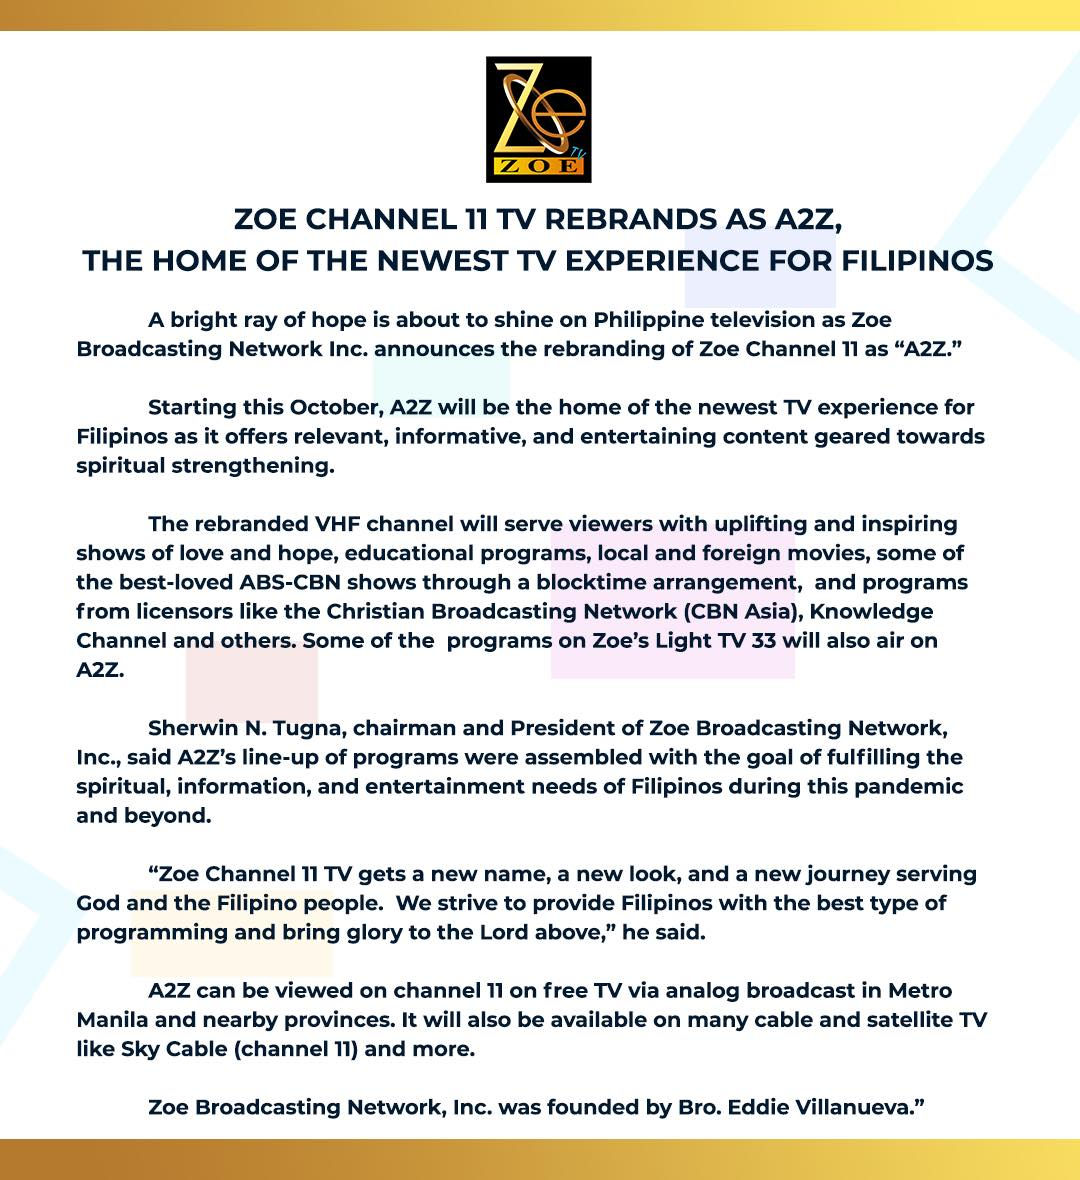 ABS-CBN shows to air on Zoe's new A2Z channel 11